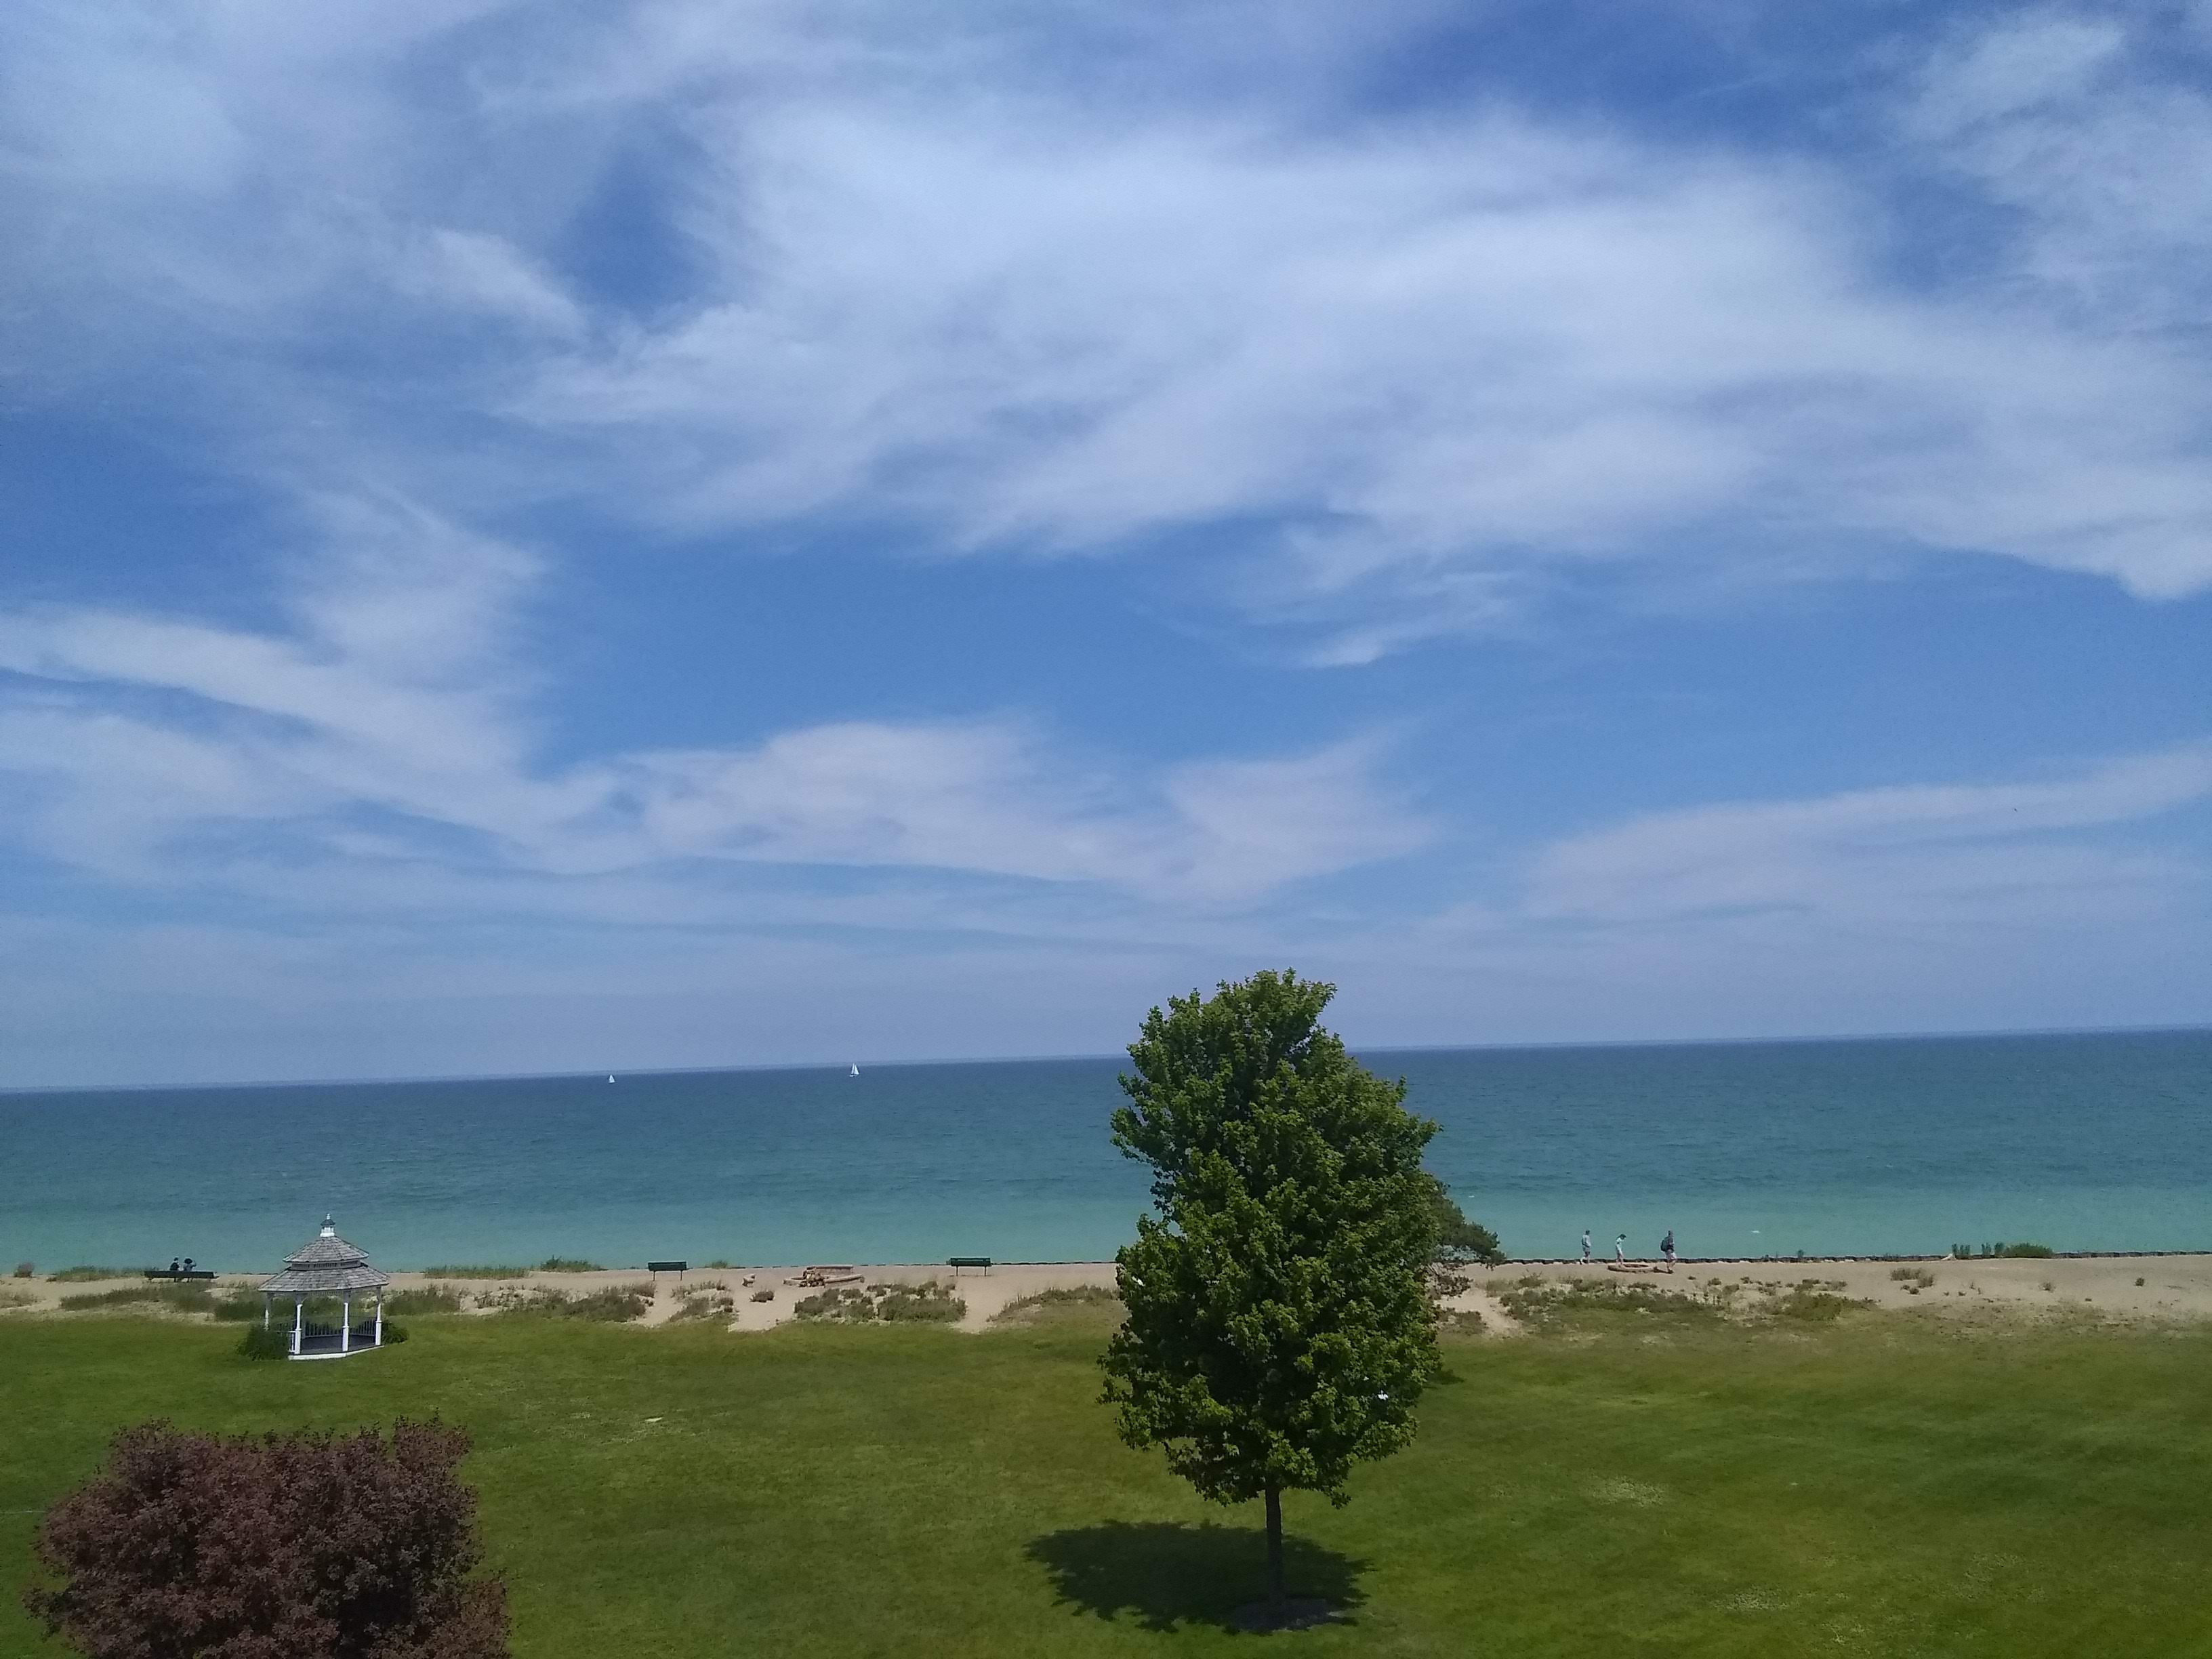 Lake Michigan view from balcony, relaxation blog